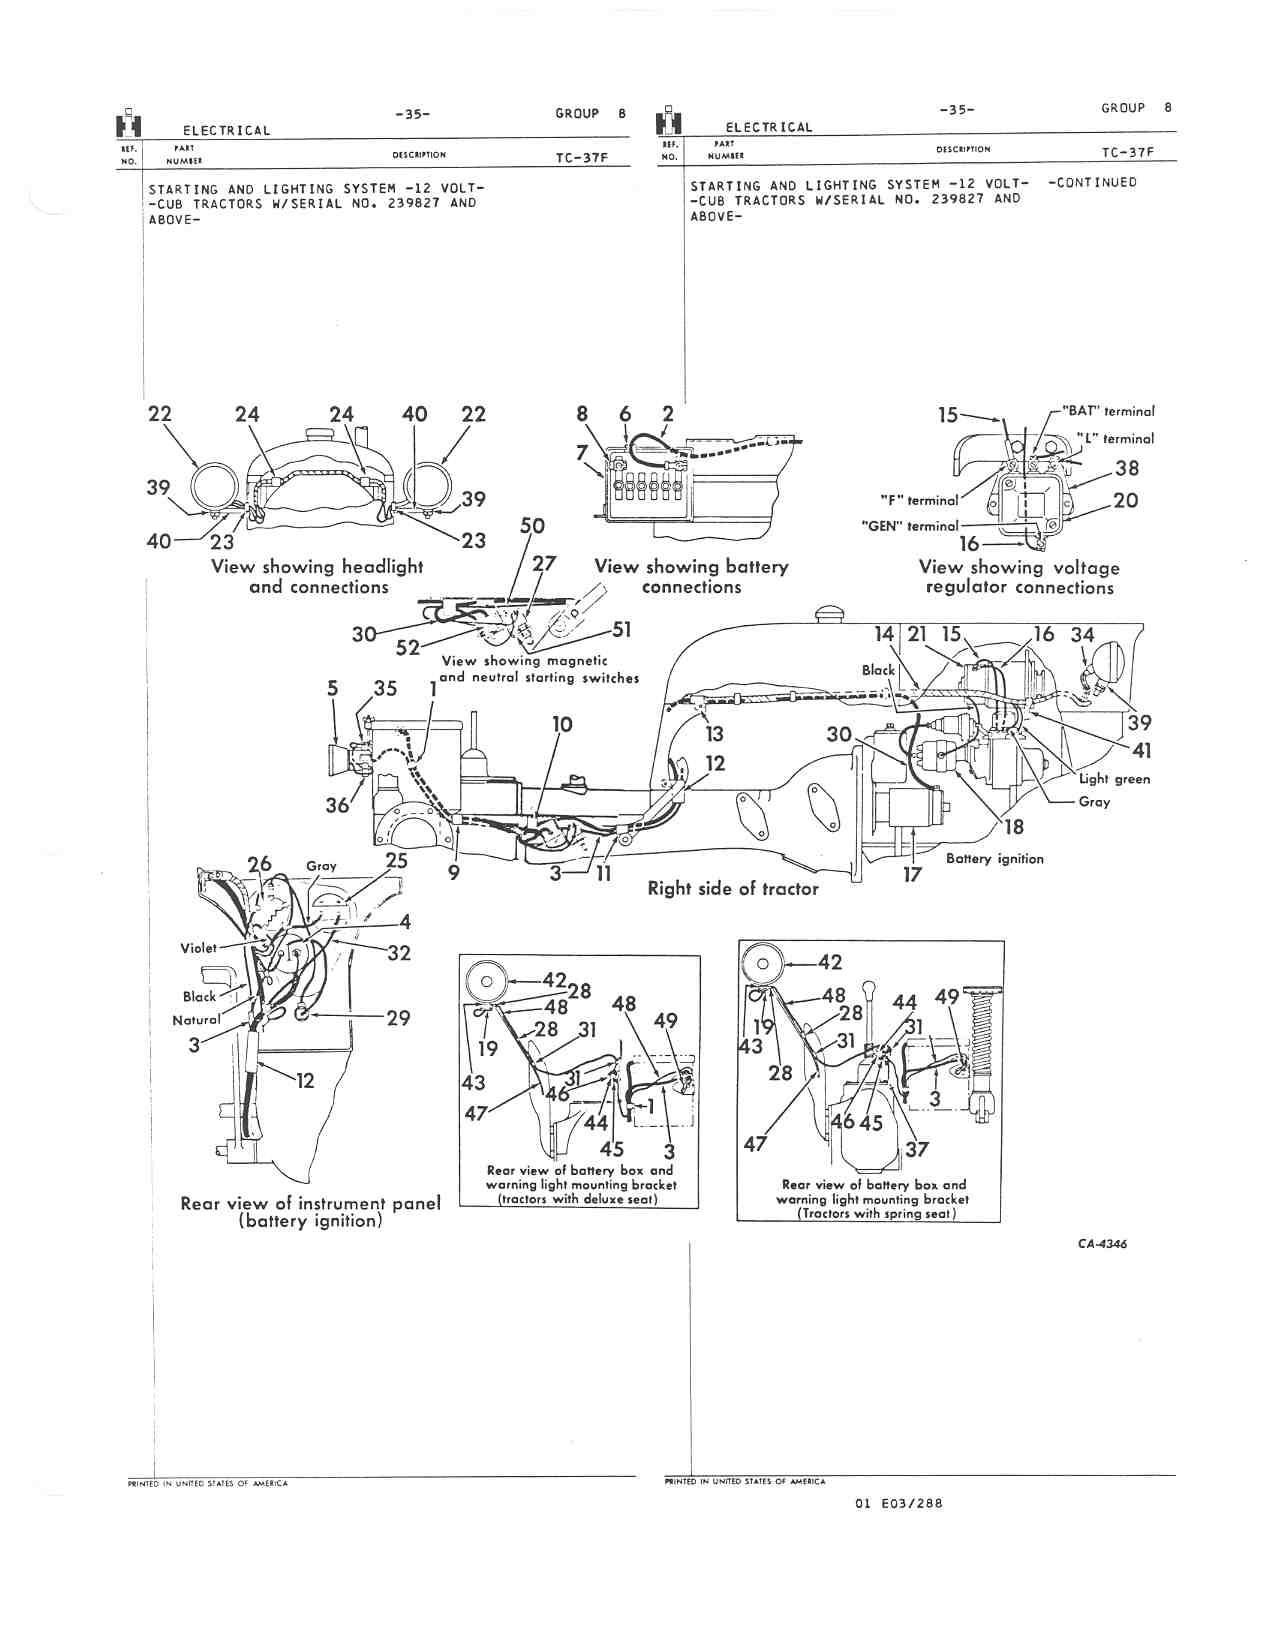 farmall h wiring diagram 2 lenito at wellread me in techrush me rh techrush me astra h engine wiring diagram P H Diagram for Refrigerant